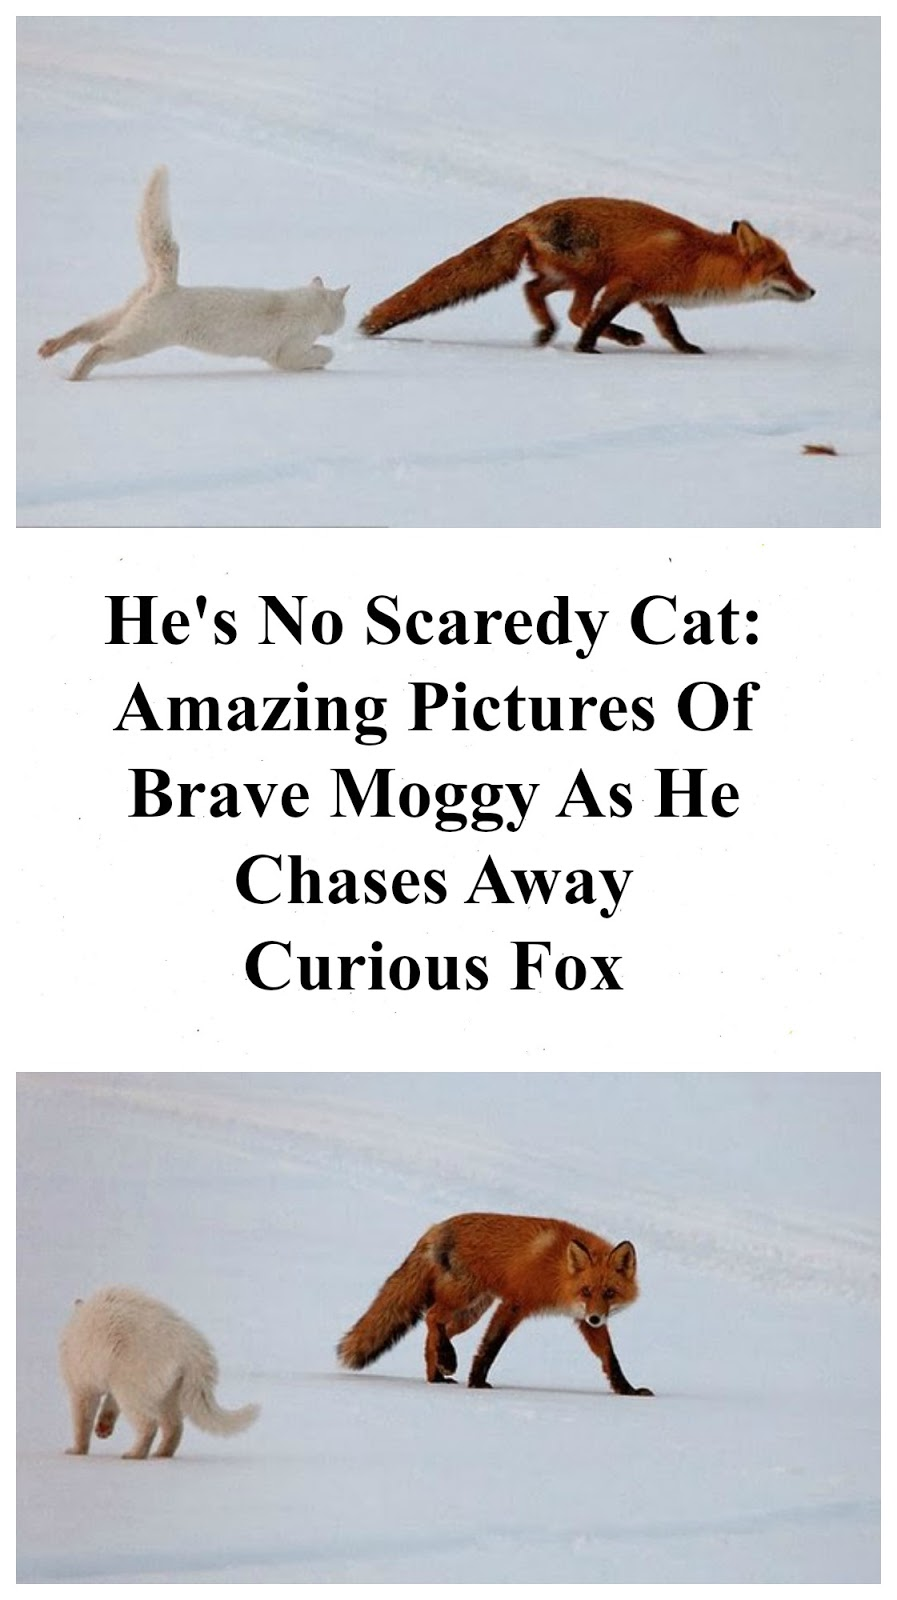 brave cat chases curious fox